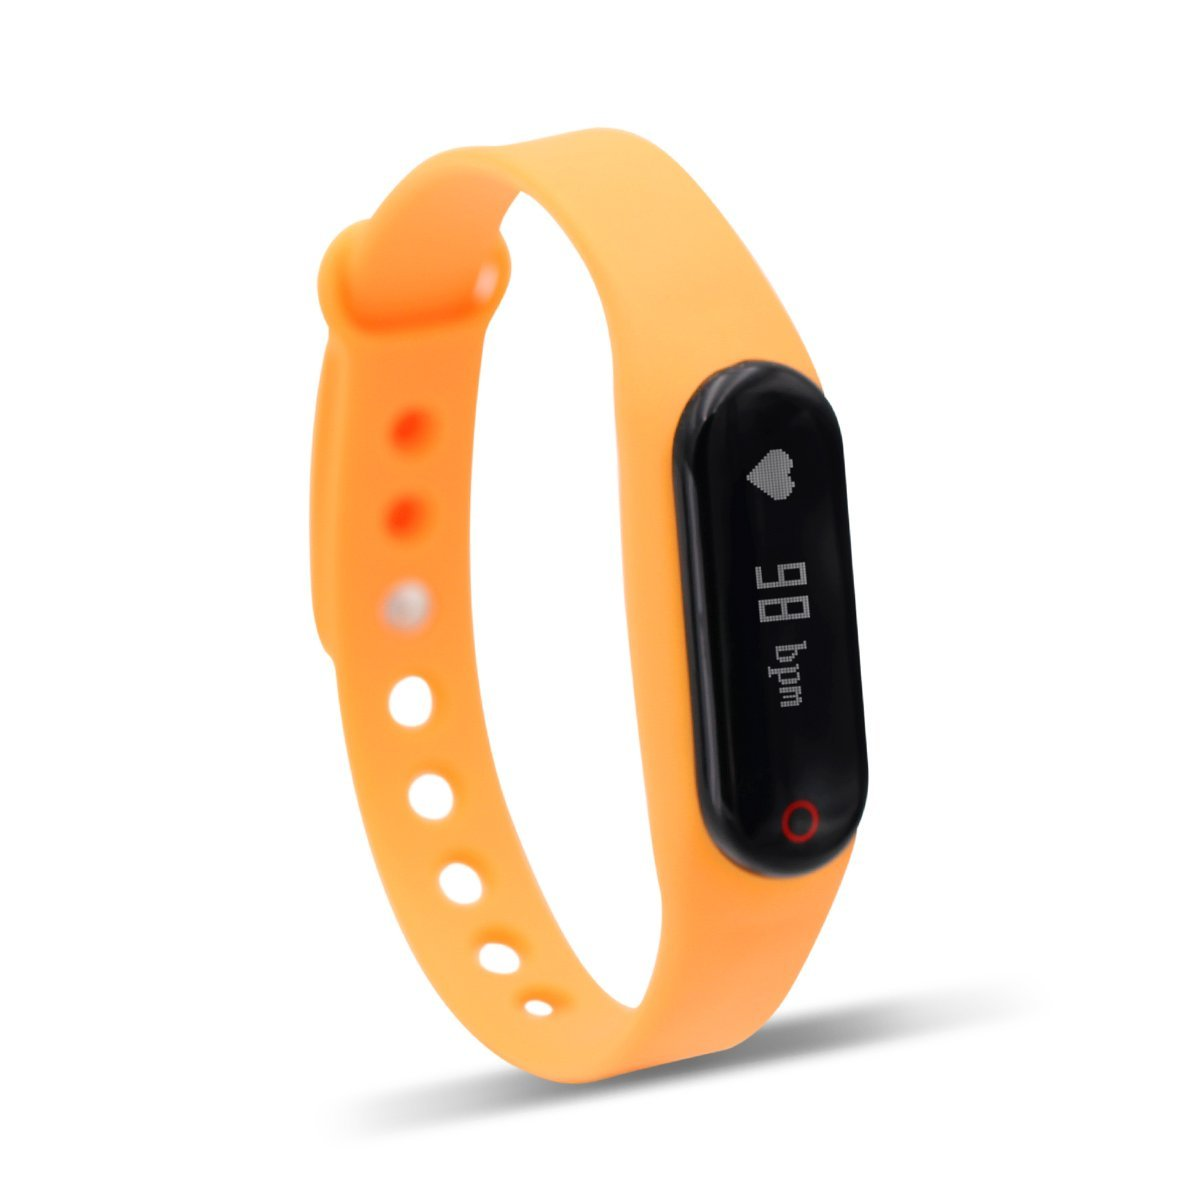 """0.69"""" Inch OLED Bluetooth 4.0 Smart Bracelet Sport Fitness Activity Trackers, Heart Rate monitor , Remote Camera By Shake & Movement Mileage, Calories Burnt, Compatible With All Android & iOS Phone"""